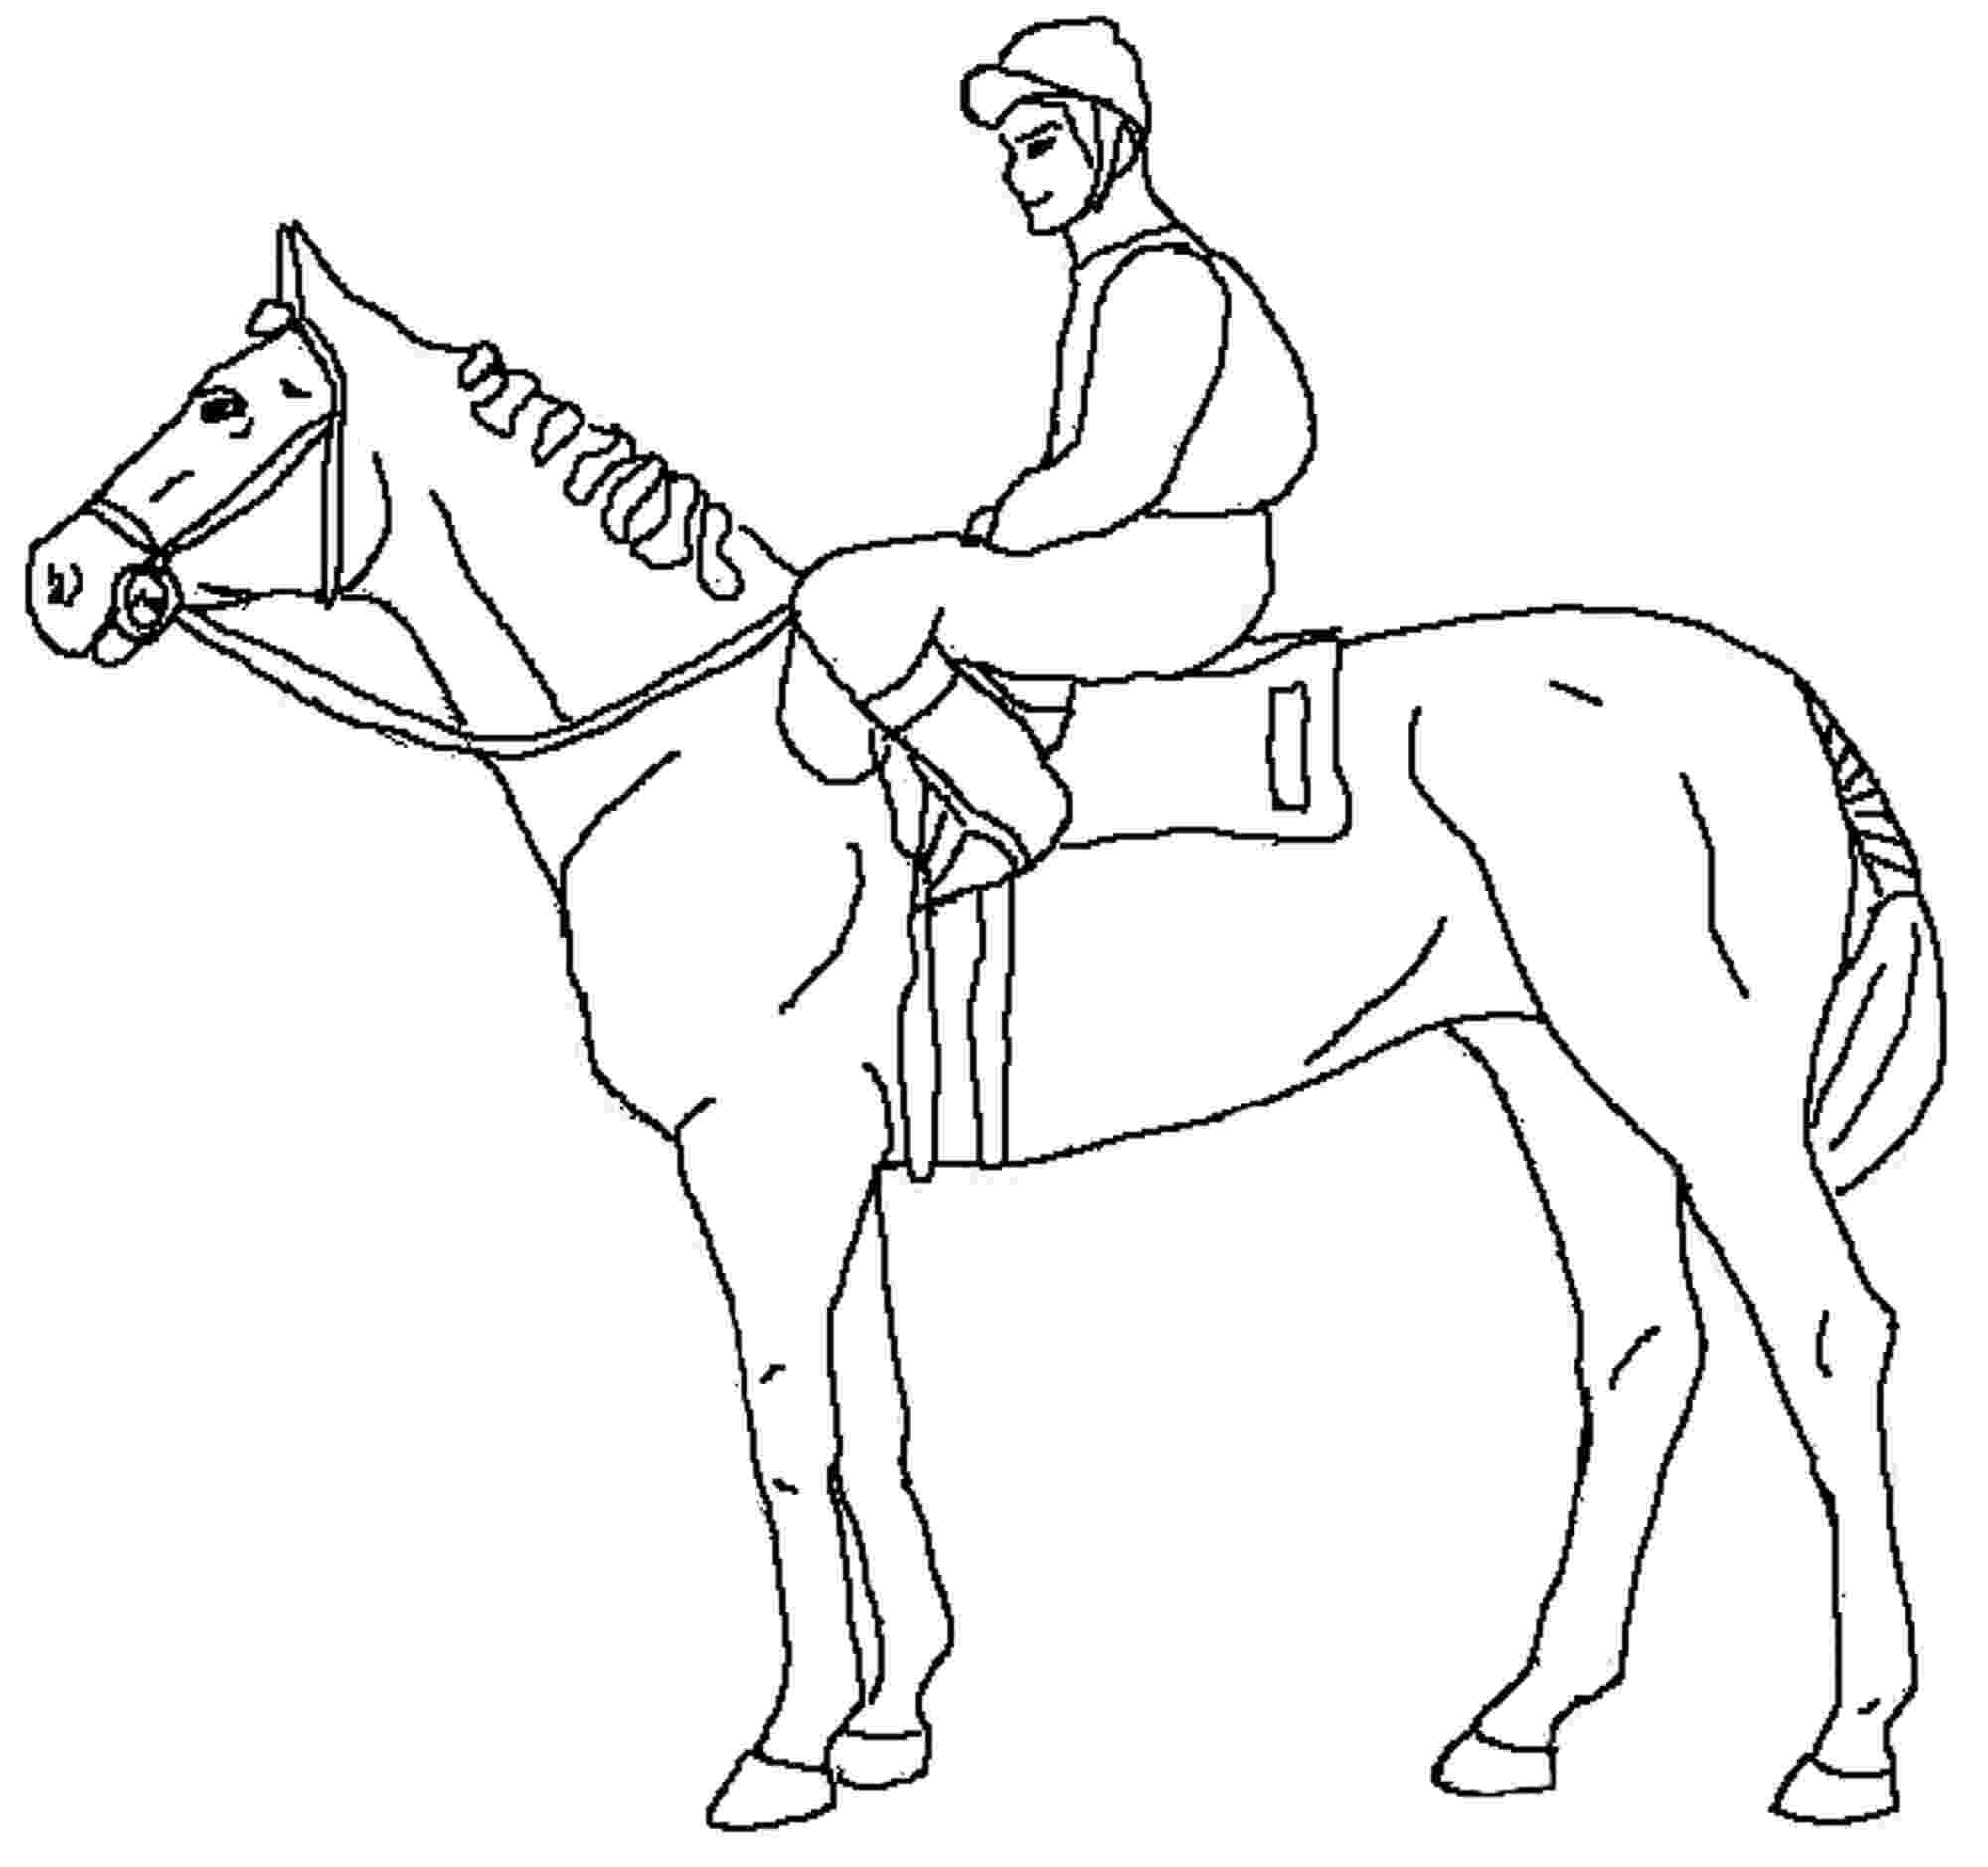 horse colouring picture palomino horse coloring pages download and print for free horse colouring picture